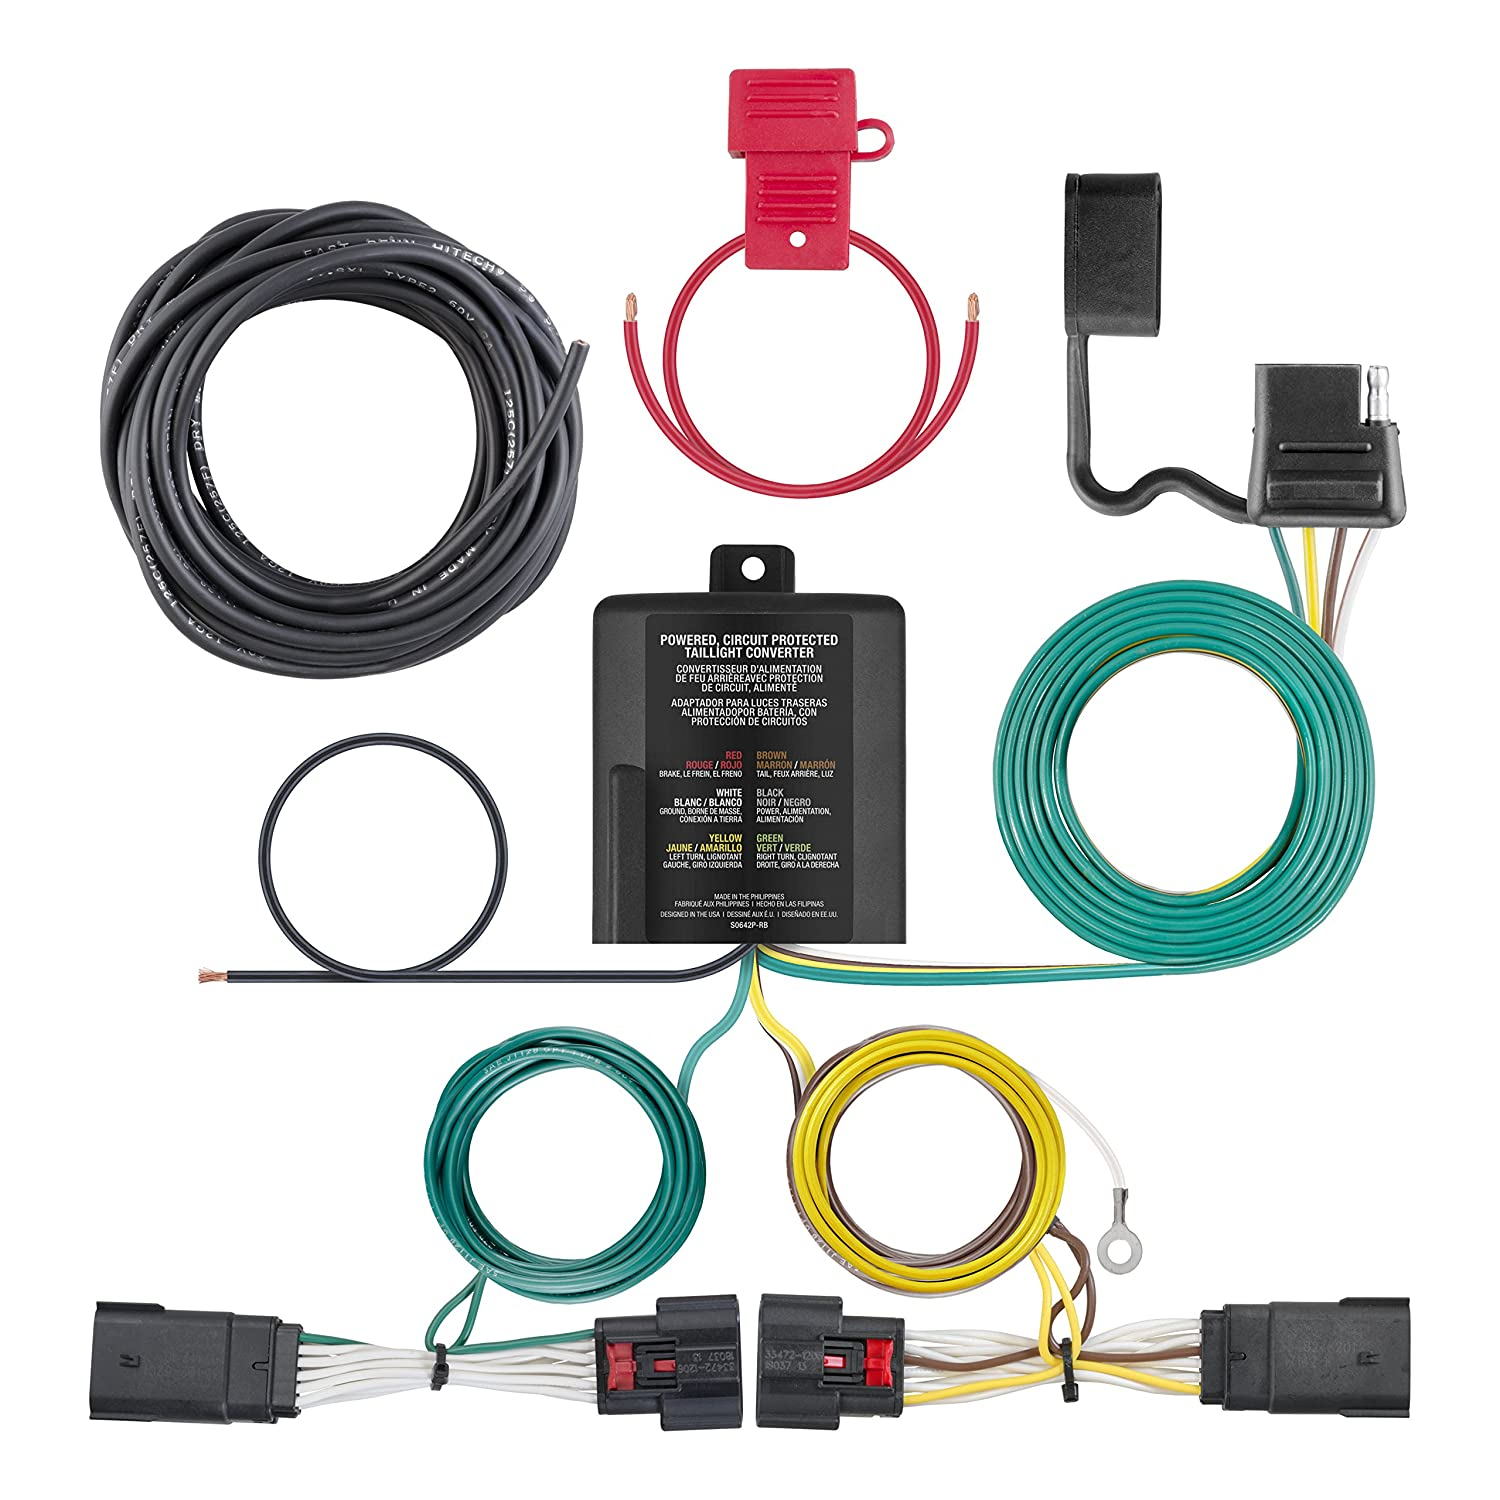 CURT Manufacturing 56407 Custom Vehicle Trailer Wiring Harness for Towing